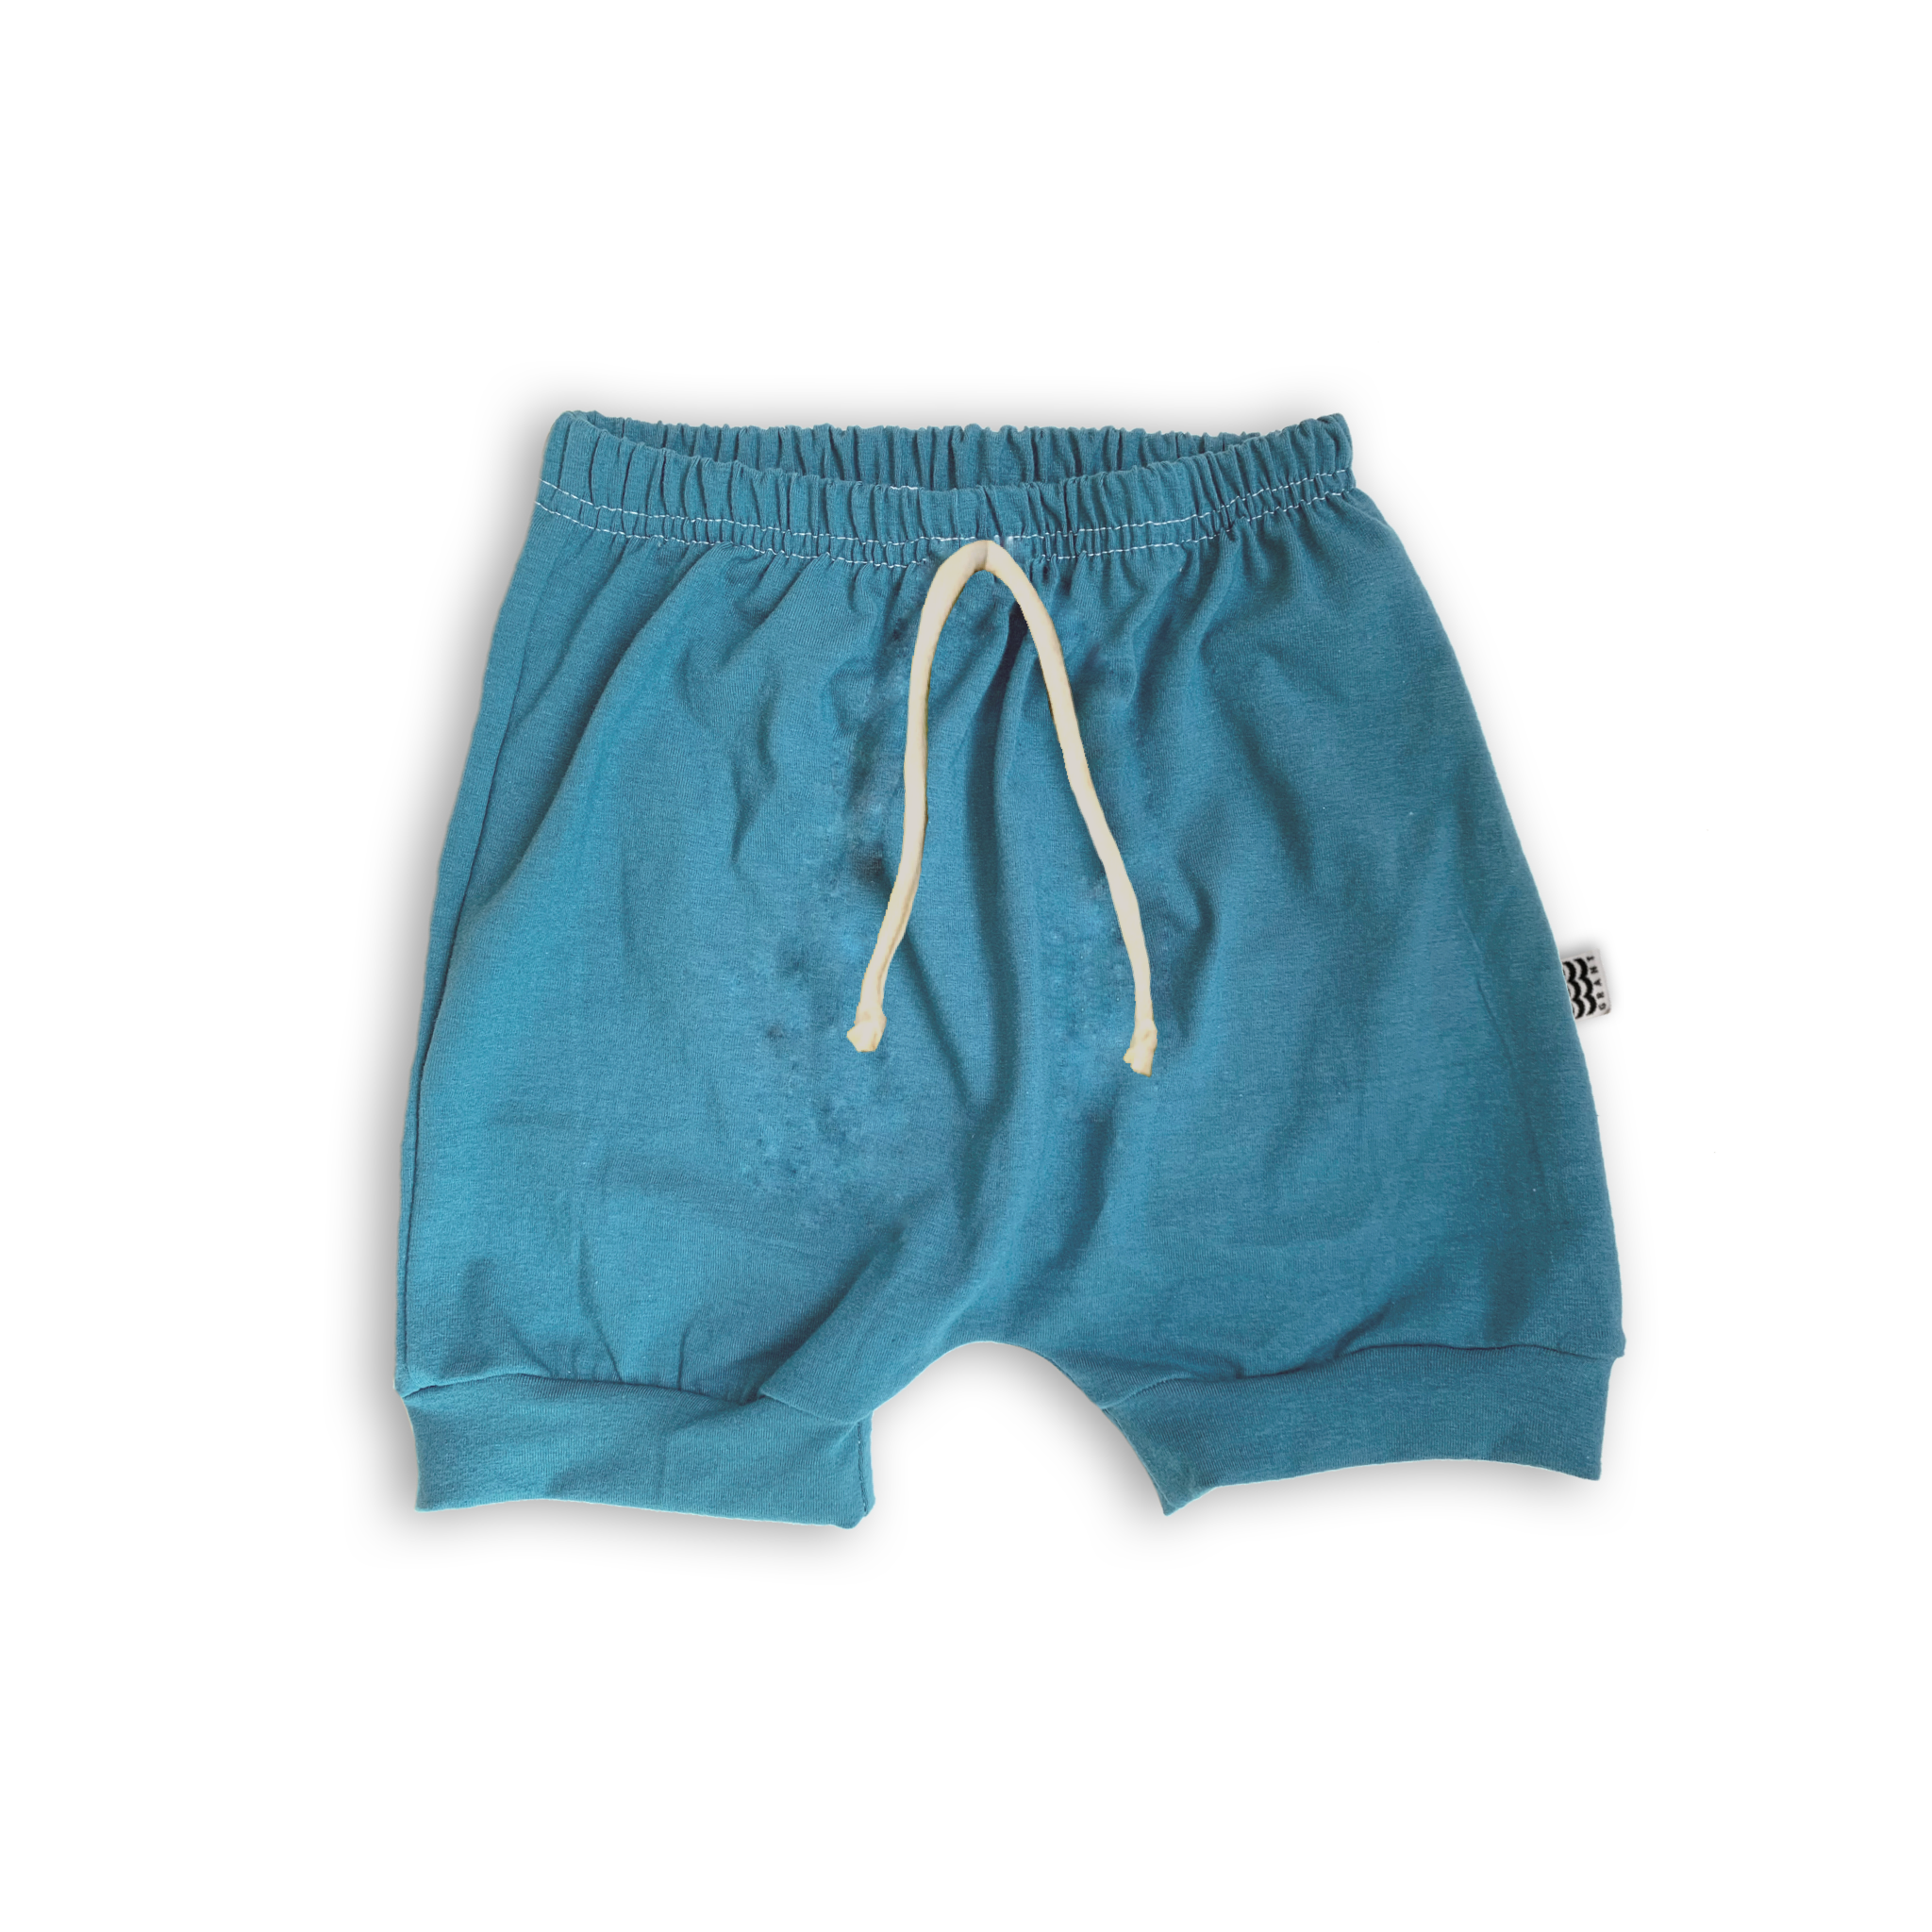 Crew Shorts in Pacific